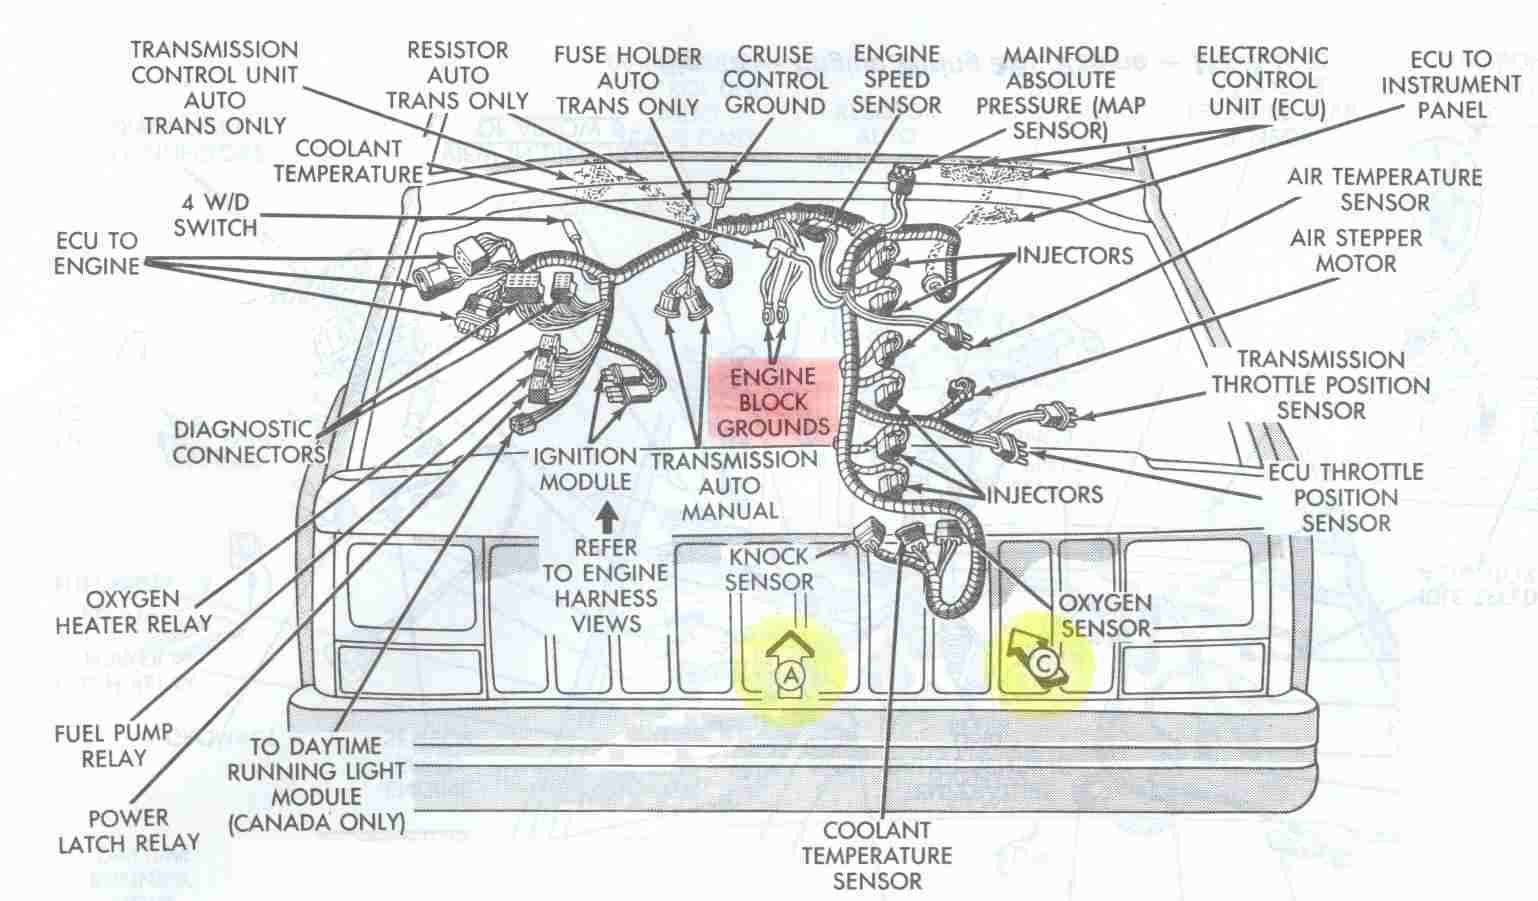 ab0134a7d9e021431187af597eb4aeca engine bay schematic showing major electrical ground points for 1993 jeep cherokee wiring diagram at reclaimingppi.co